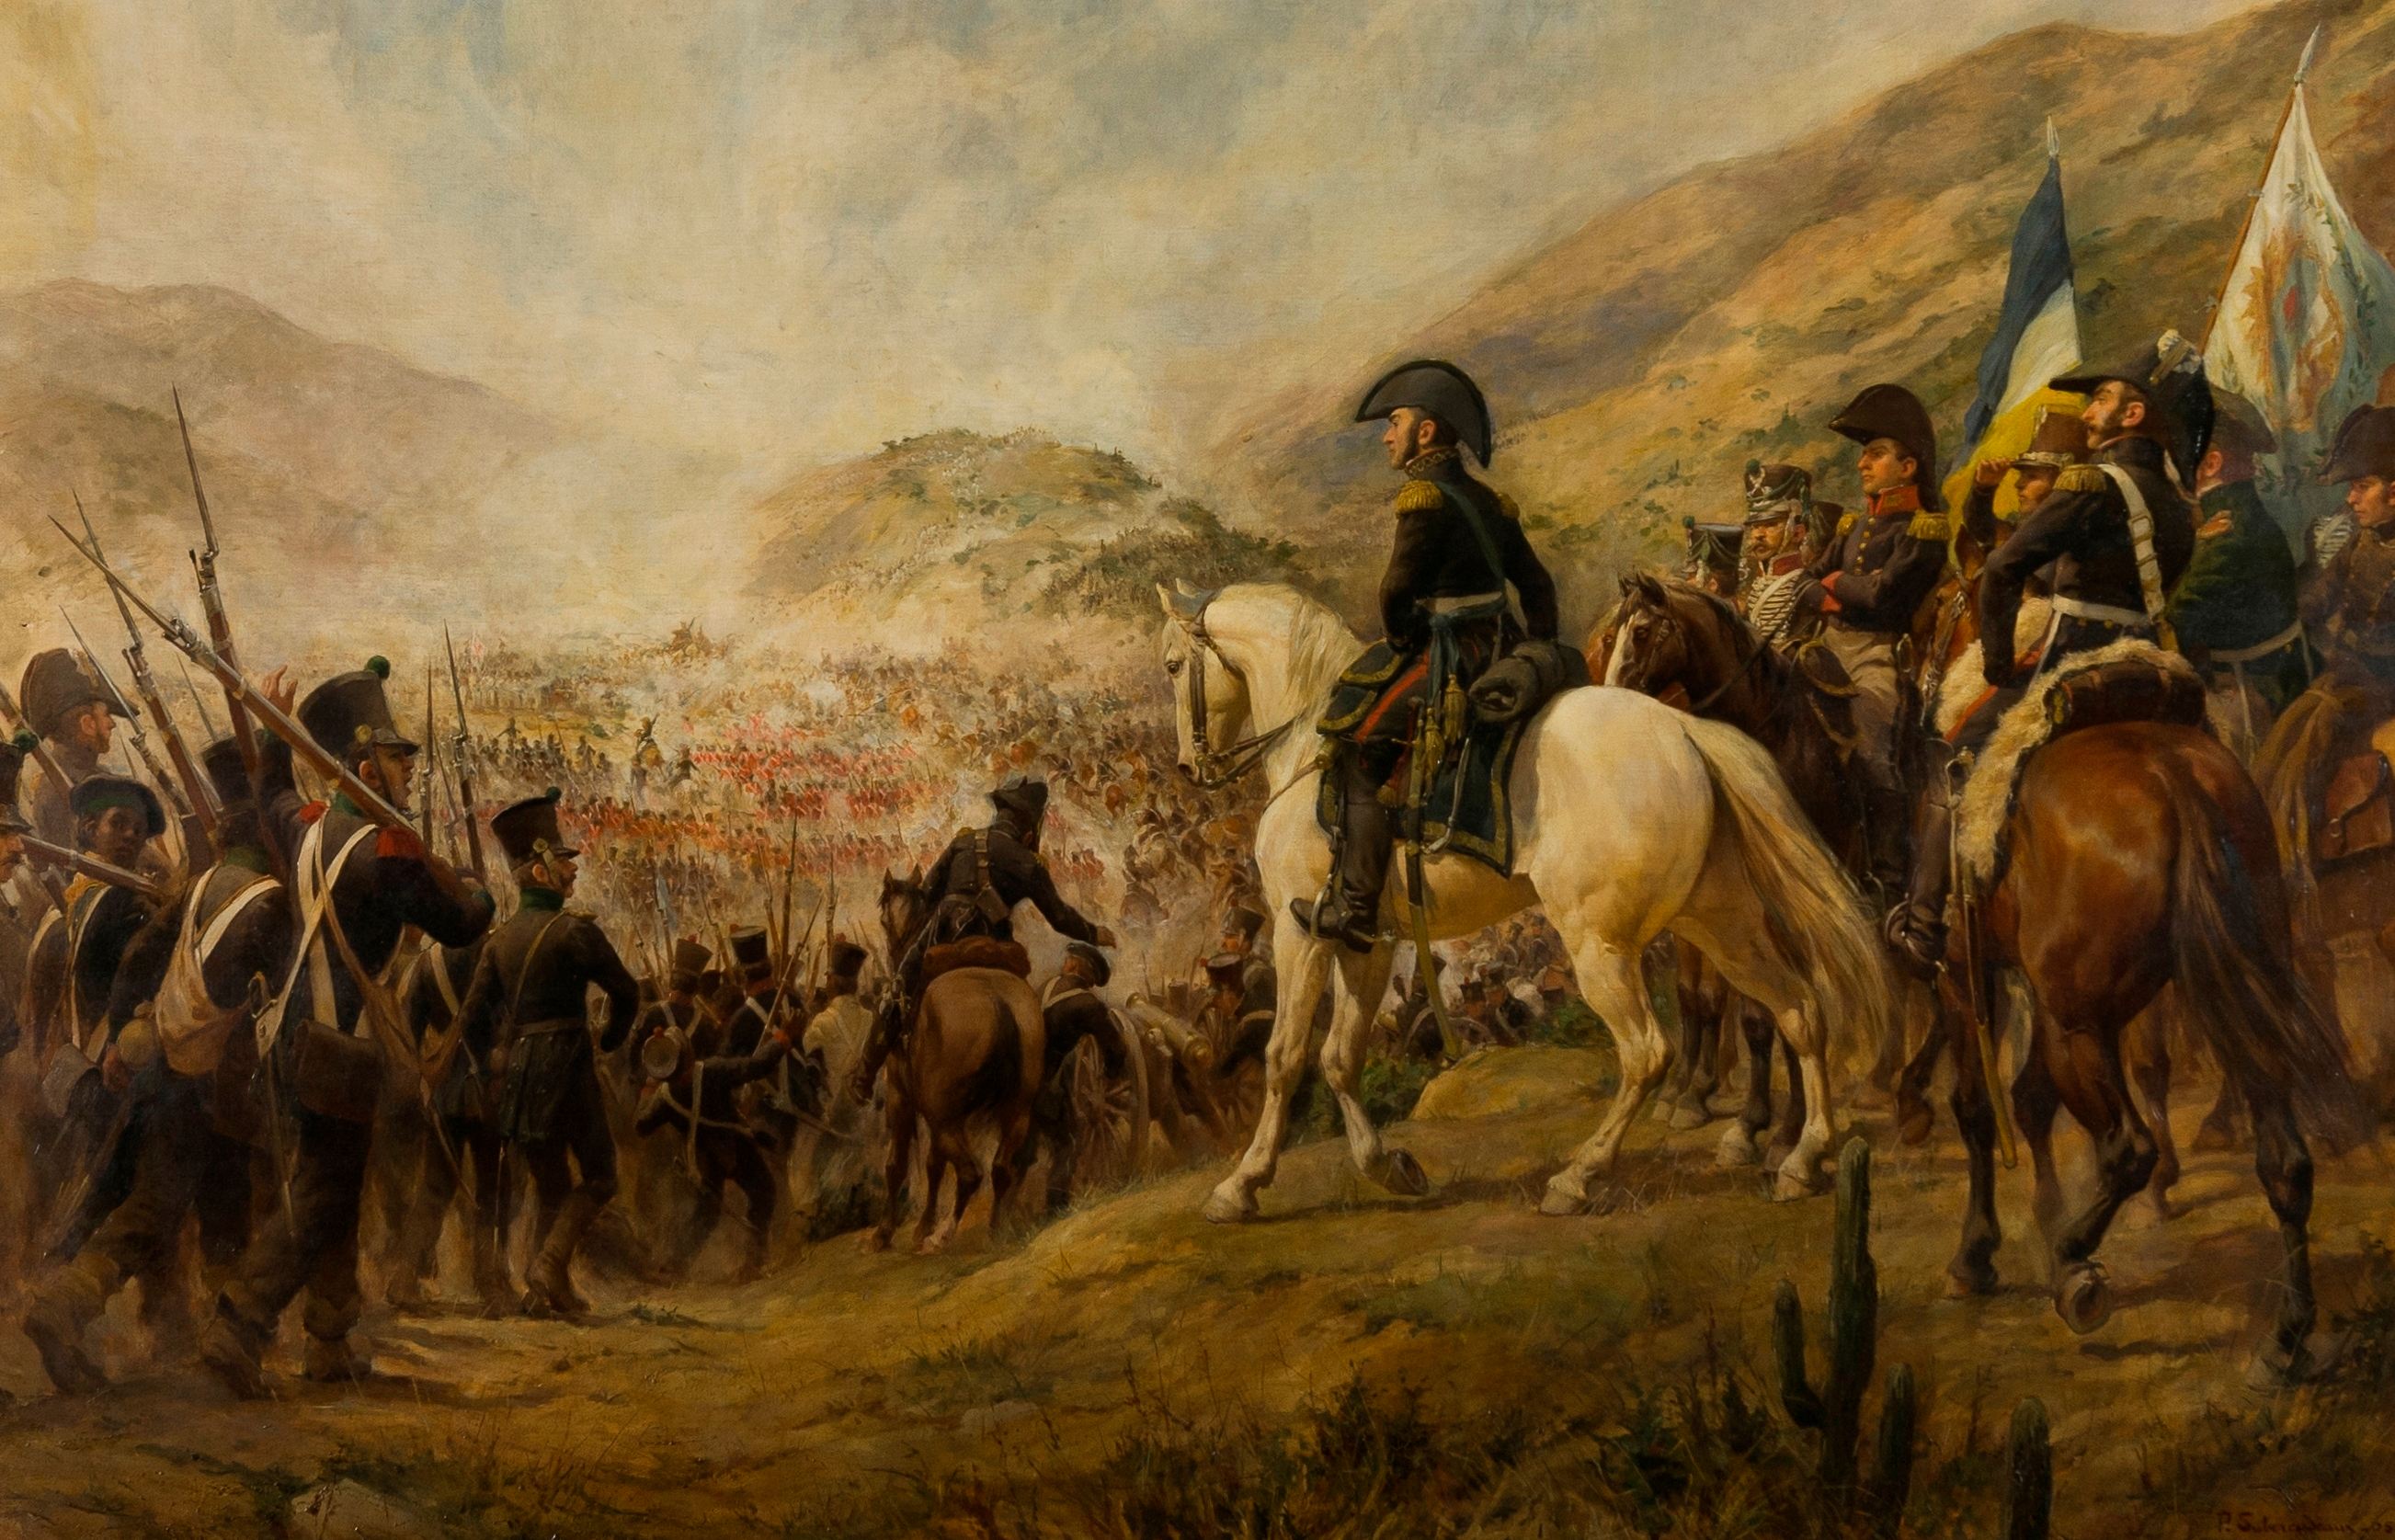 Battle_of_Chacabuco.jpg